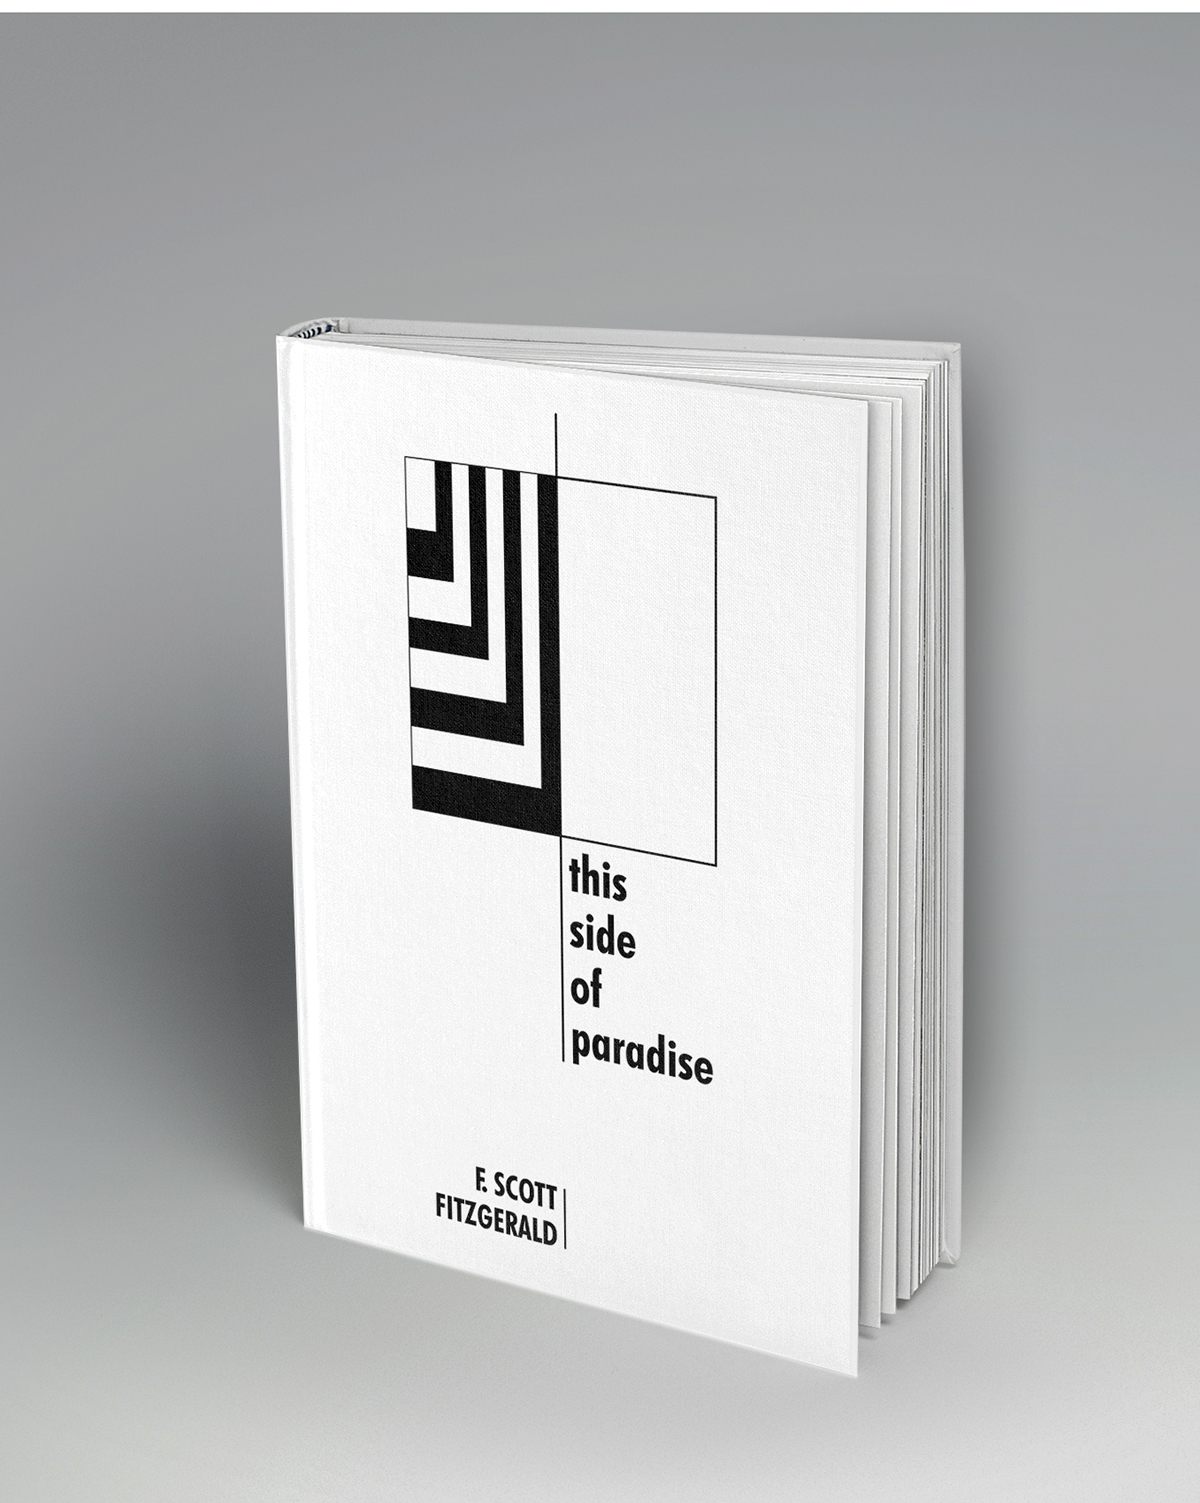 book cover book cover graphic design  cover design typography   black and white geometric